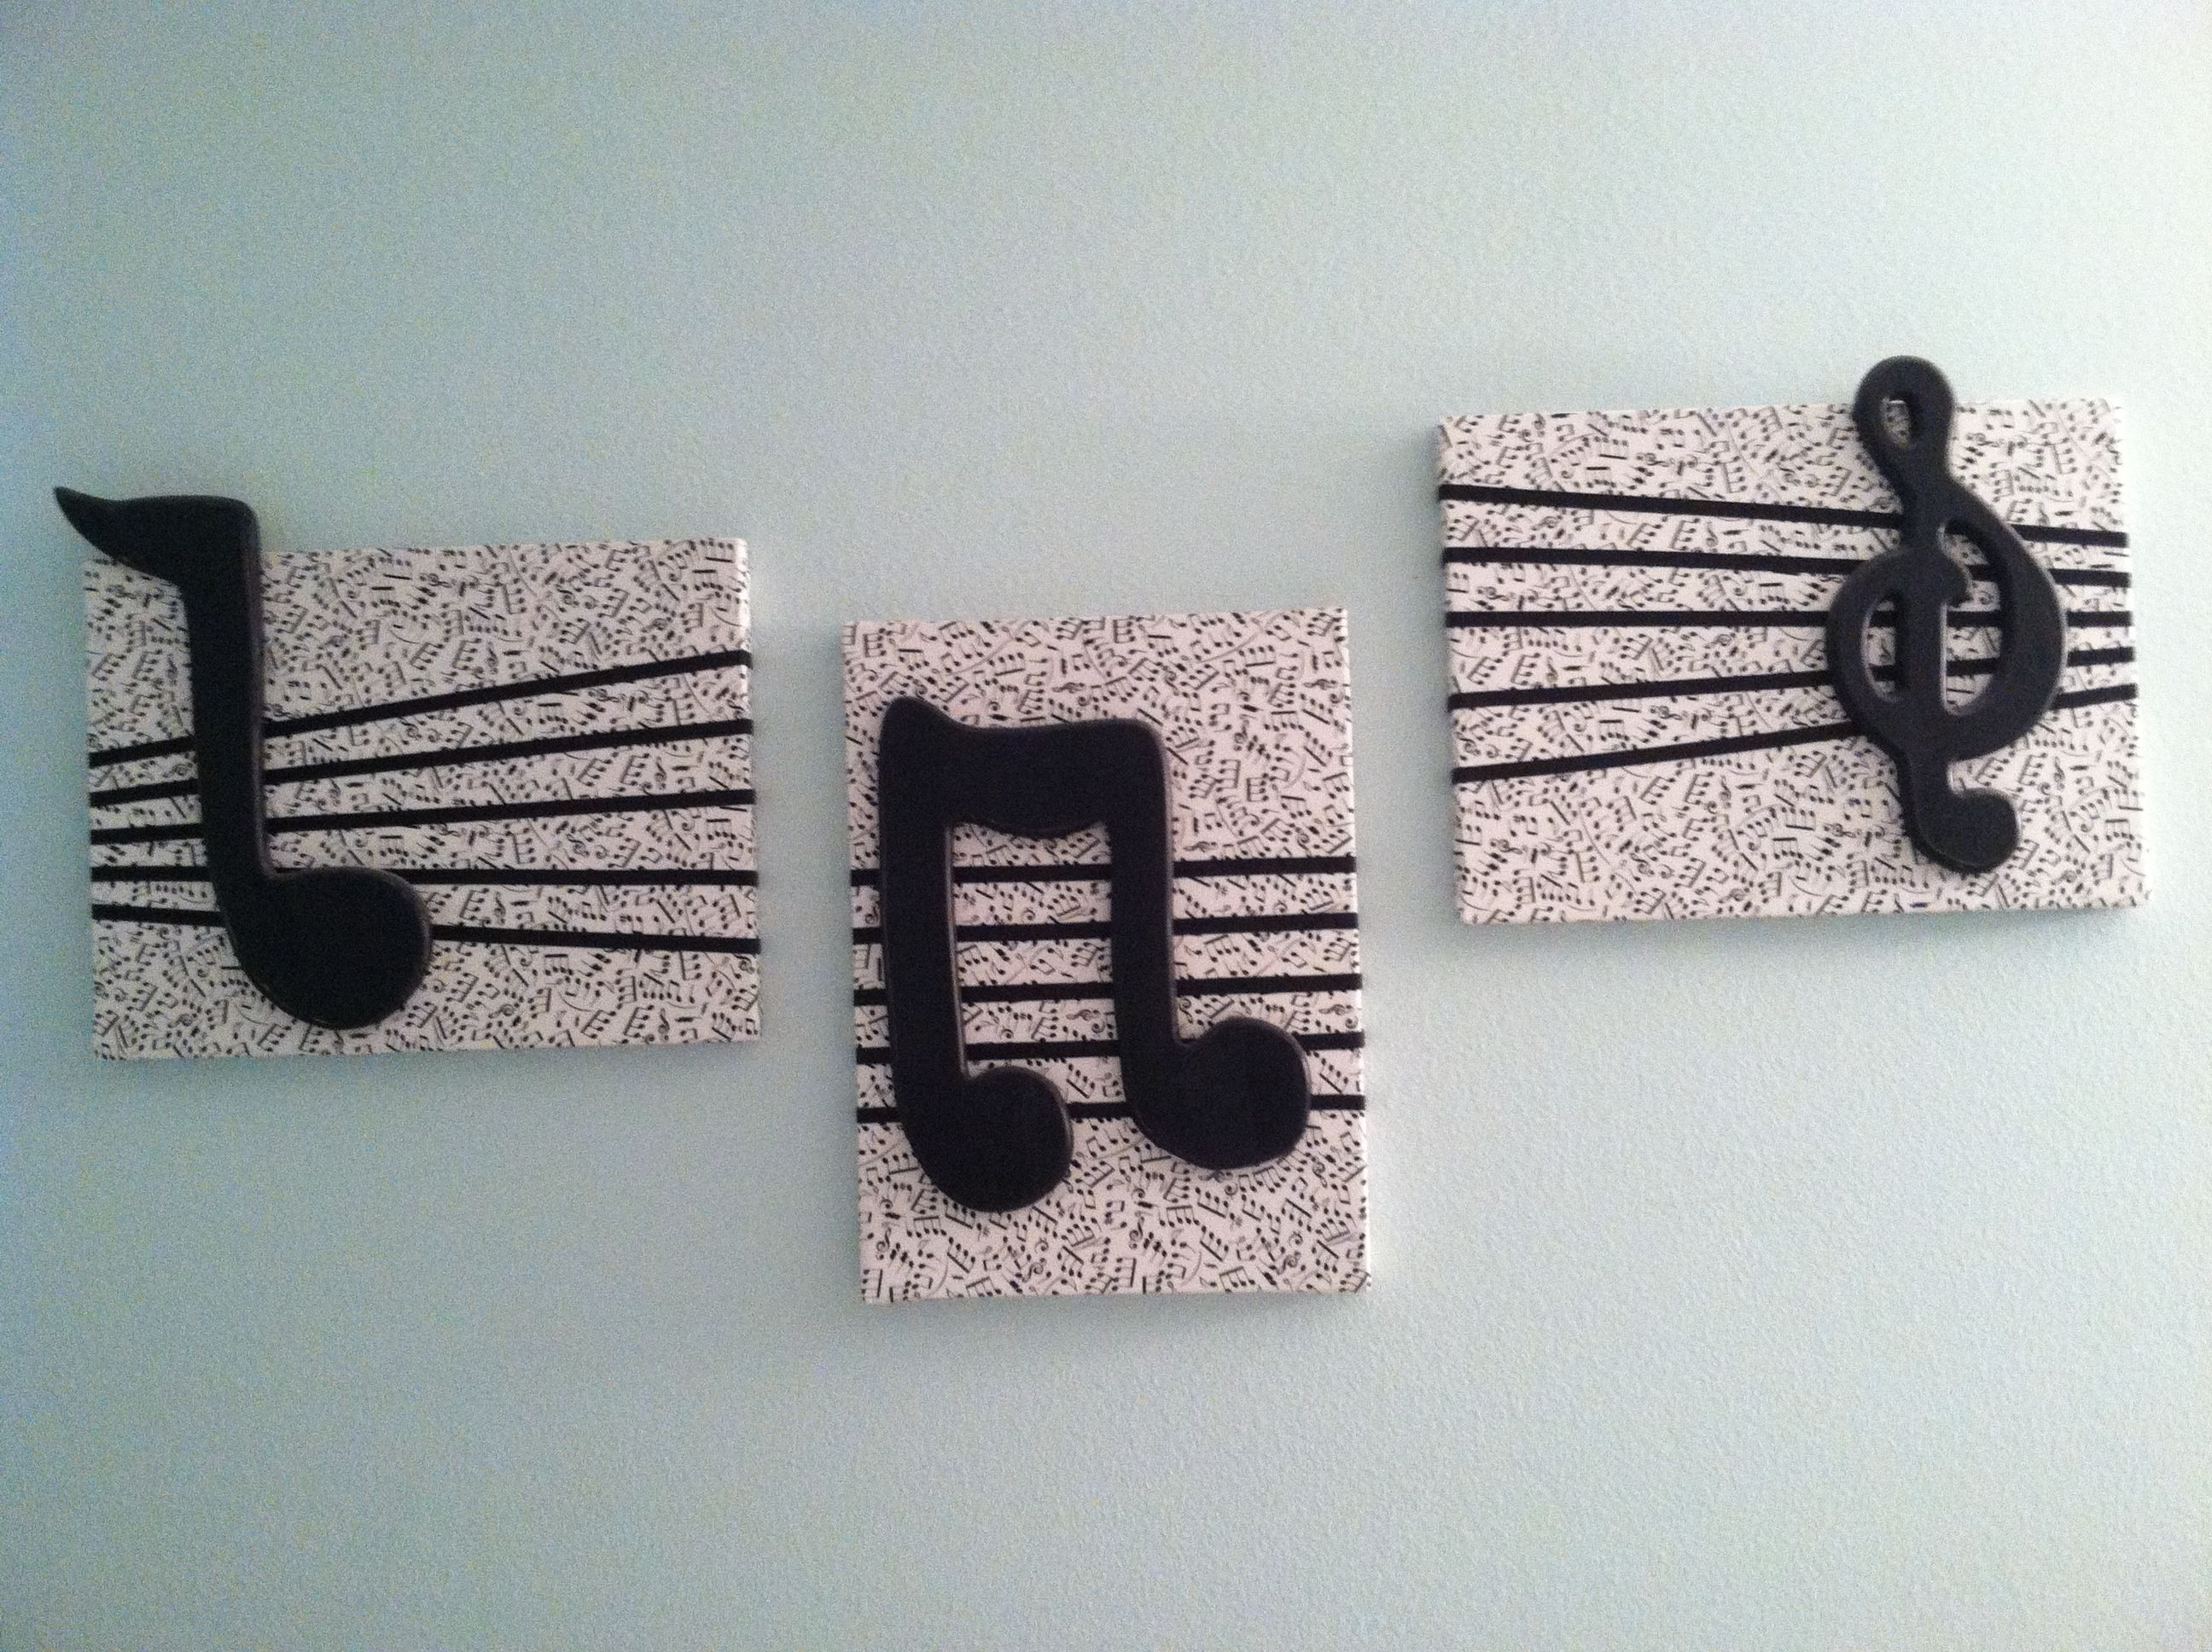 Music Note Wall Art Decor With 2018 Diy Wall Decor Cover Canvas Squares With Music Note Fabric, Add (View 13 of 15)